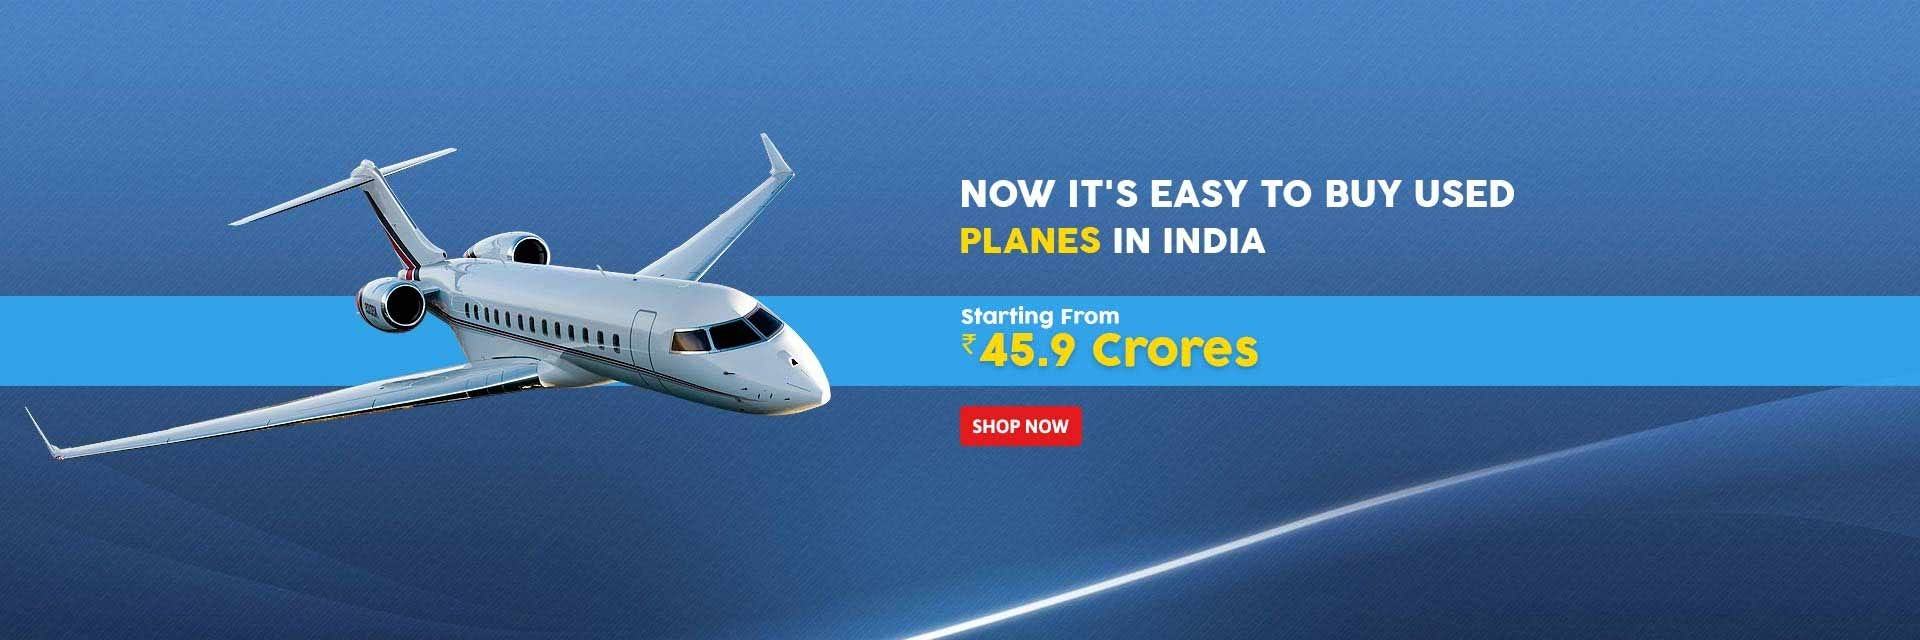 Buy planes in India